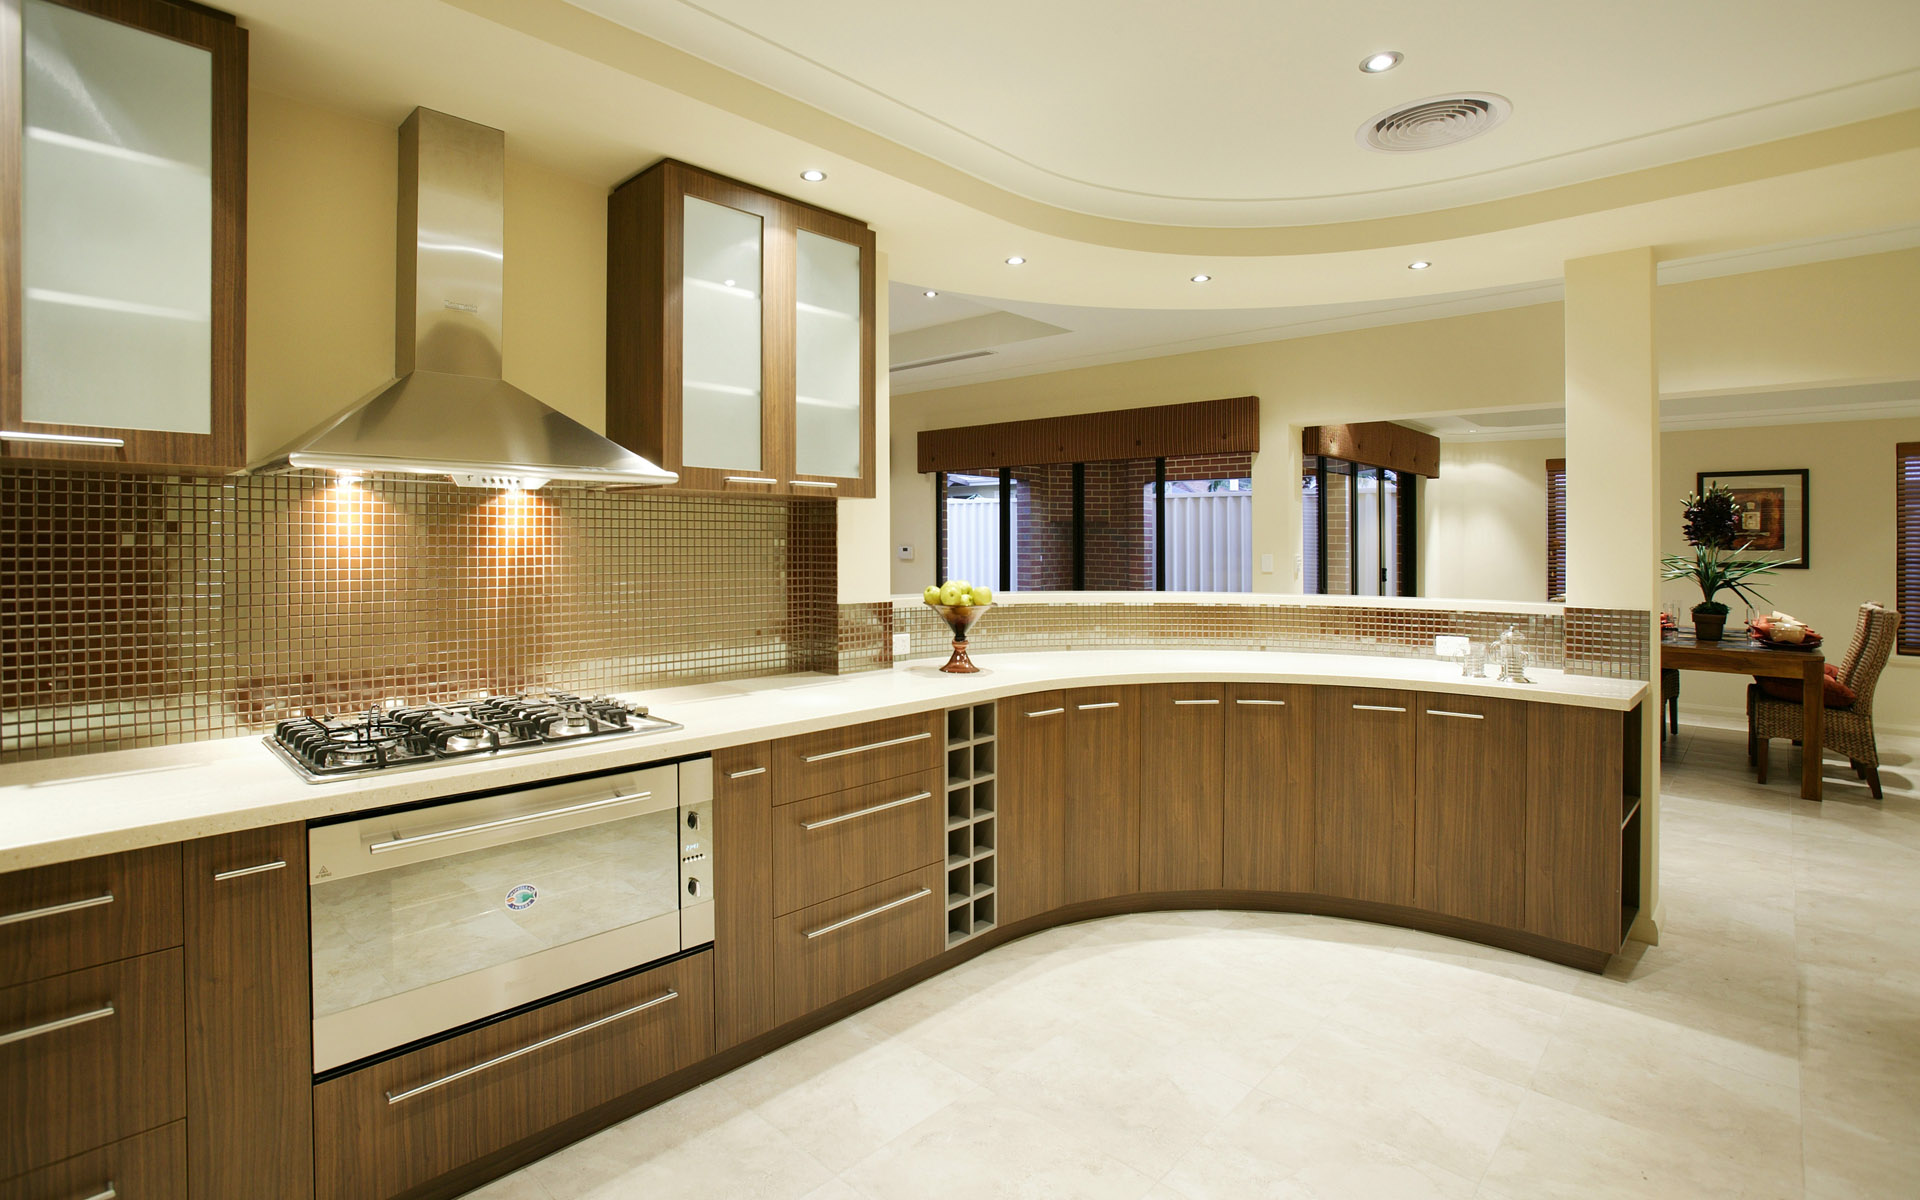 New Modern Kitchen Design Ipc199 Modern Kitchen Design Ideas Al Habib Panel Doors